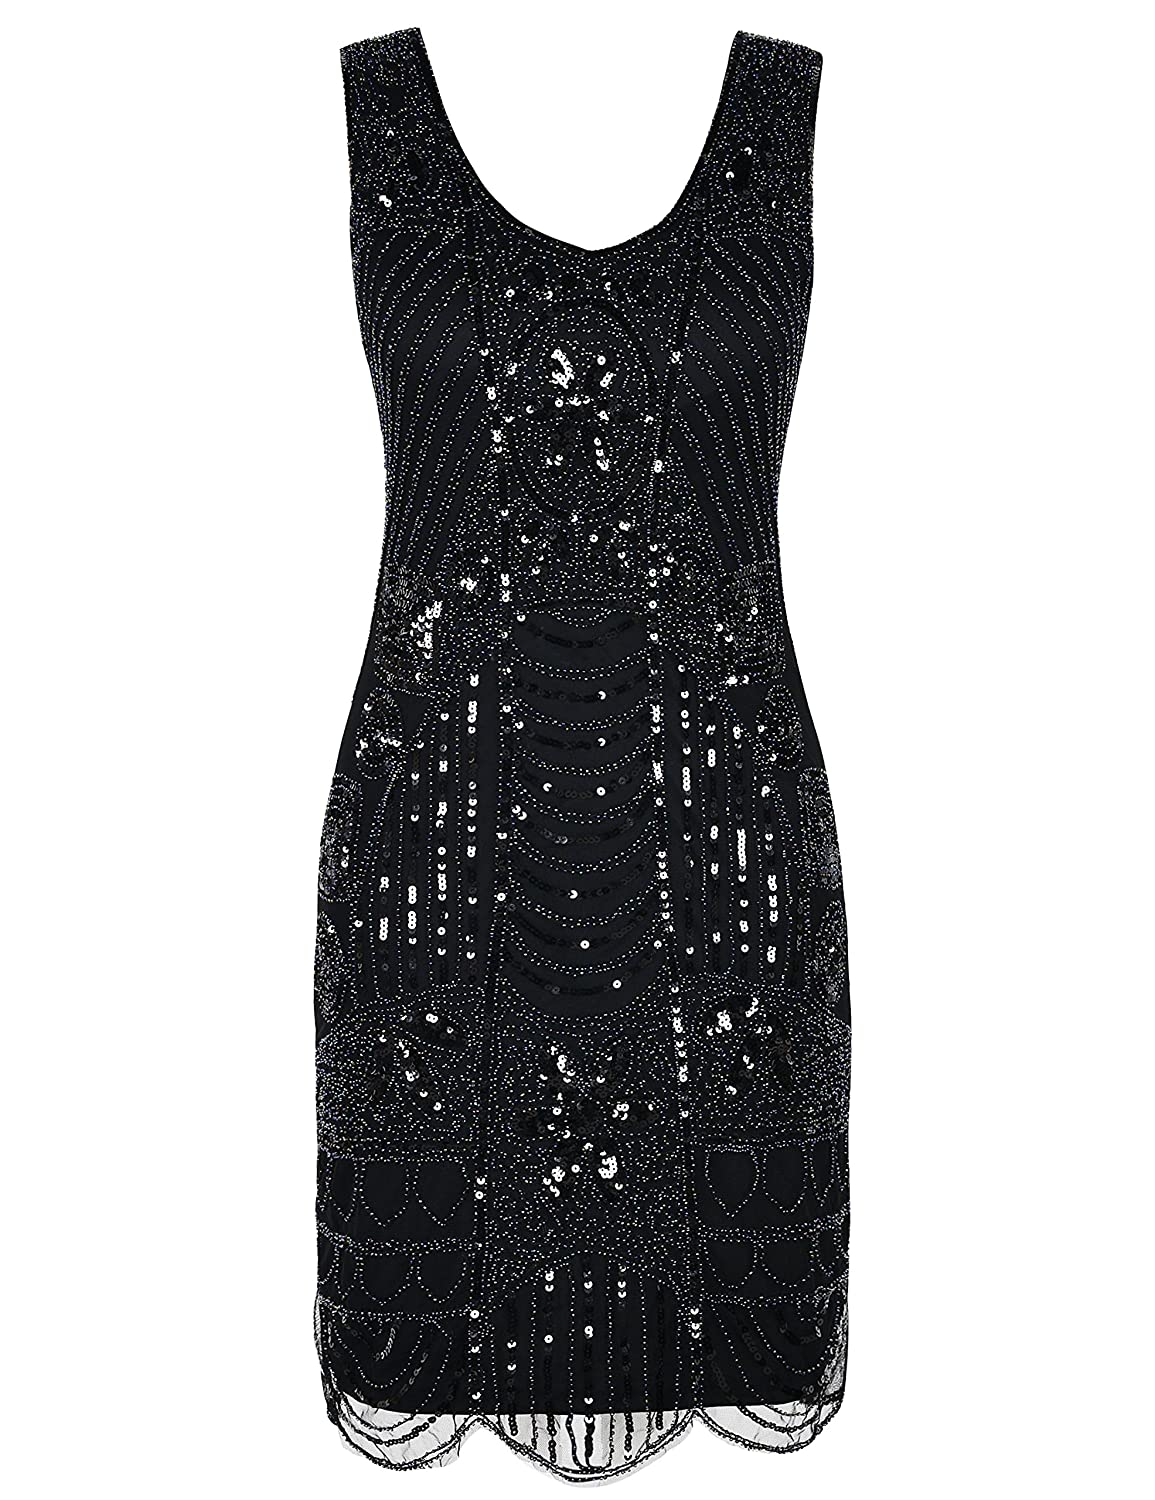 Roaring 20s Costumes- Flapper Costumes, Gangster Costumes PrettyGuide Womens 1920s Flapper Dress Gatsby Sequin Scalloped Inspired Cocktail Dress $39.99 AT vintagedancer.com